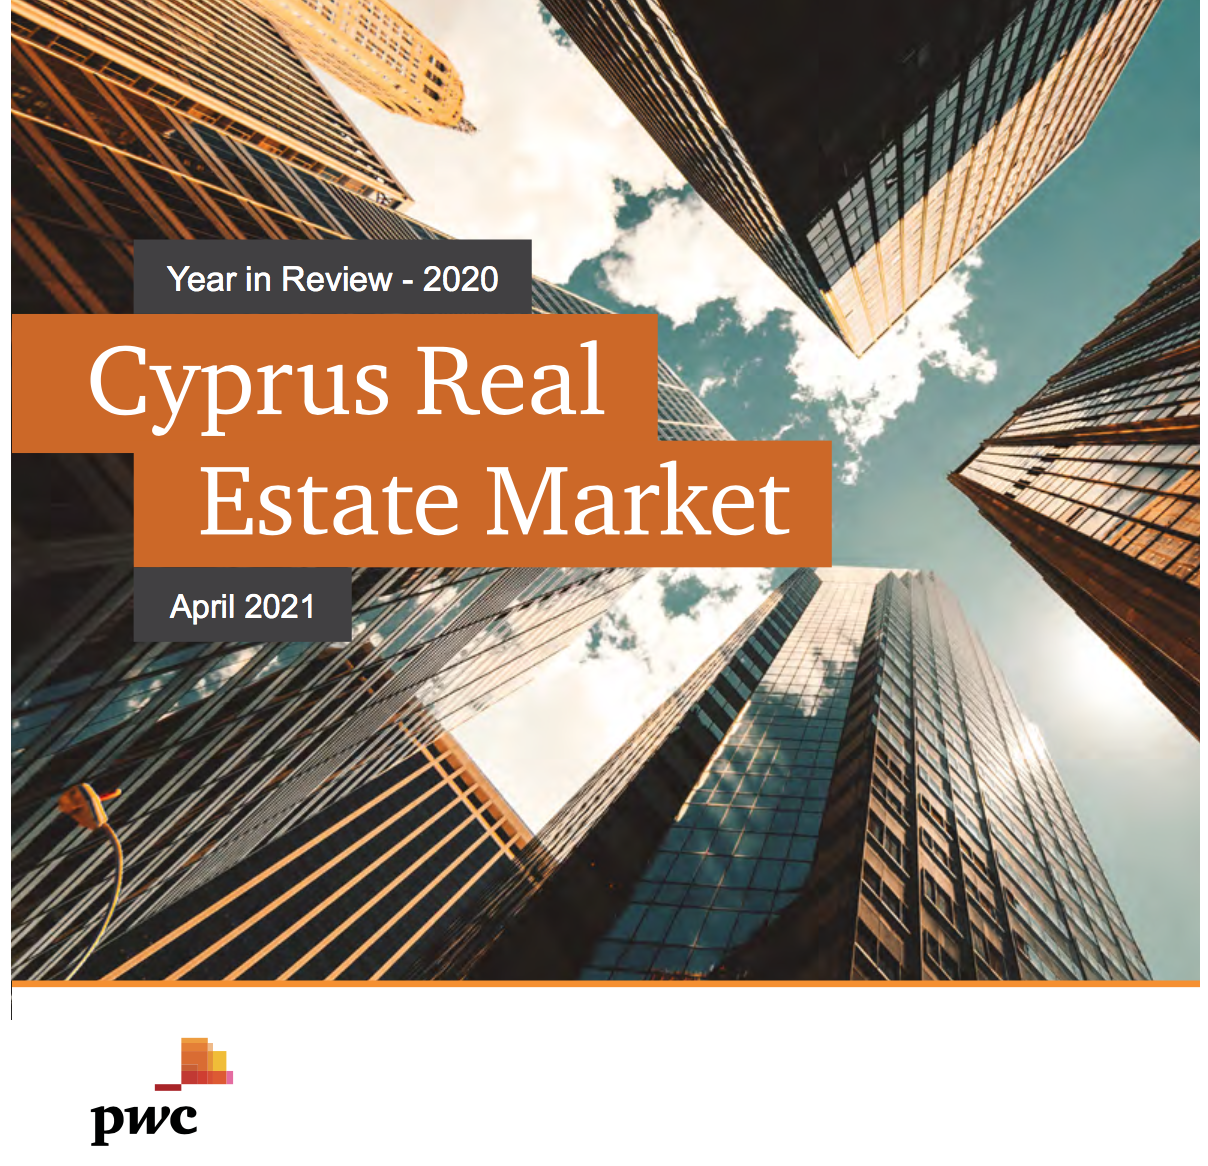 Cyprus Real Estate 2020 Review